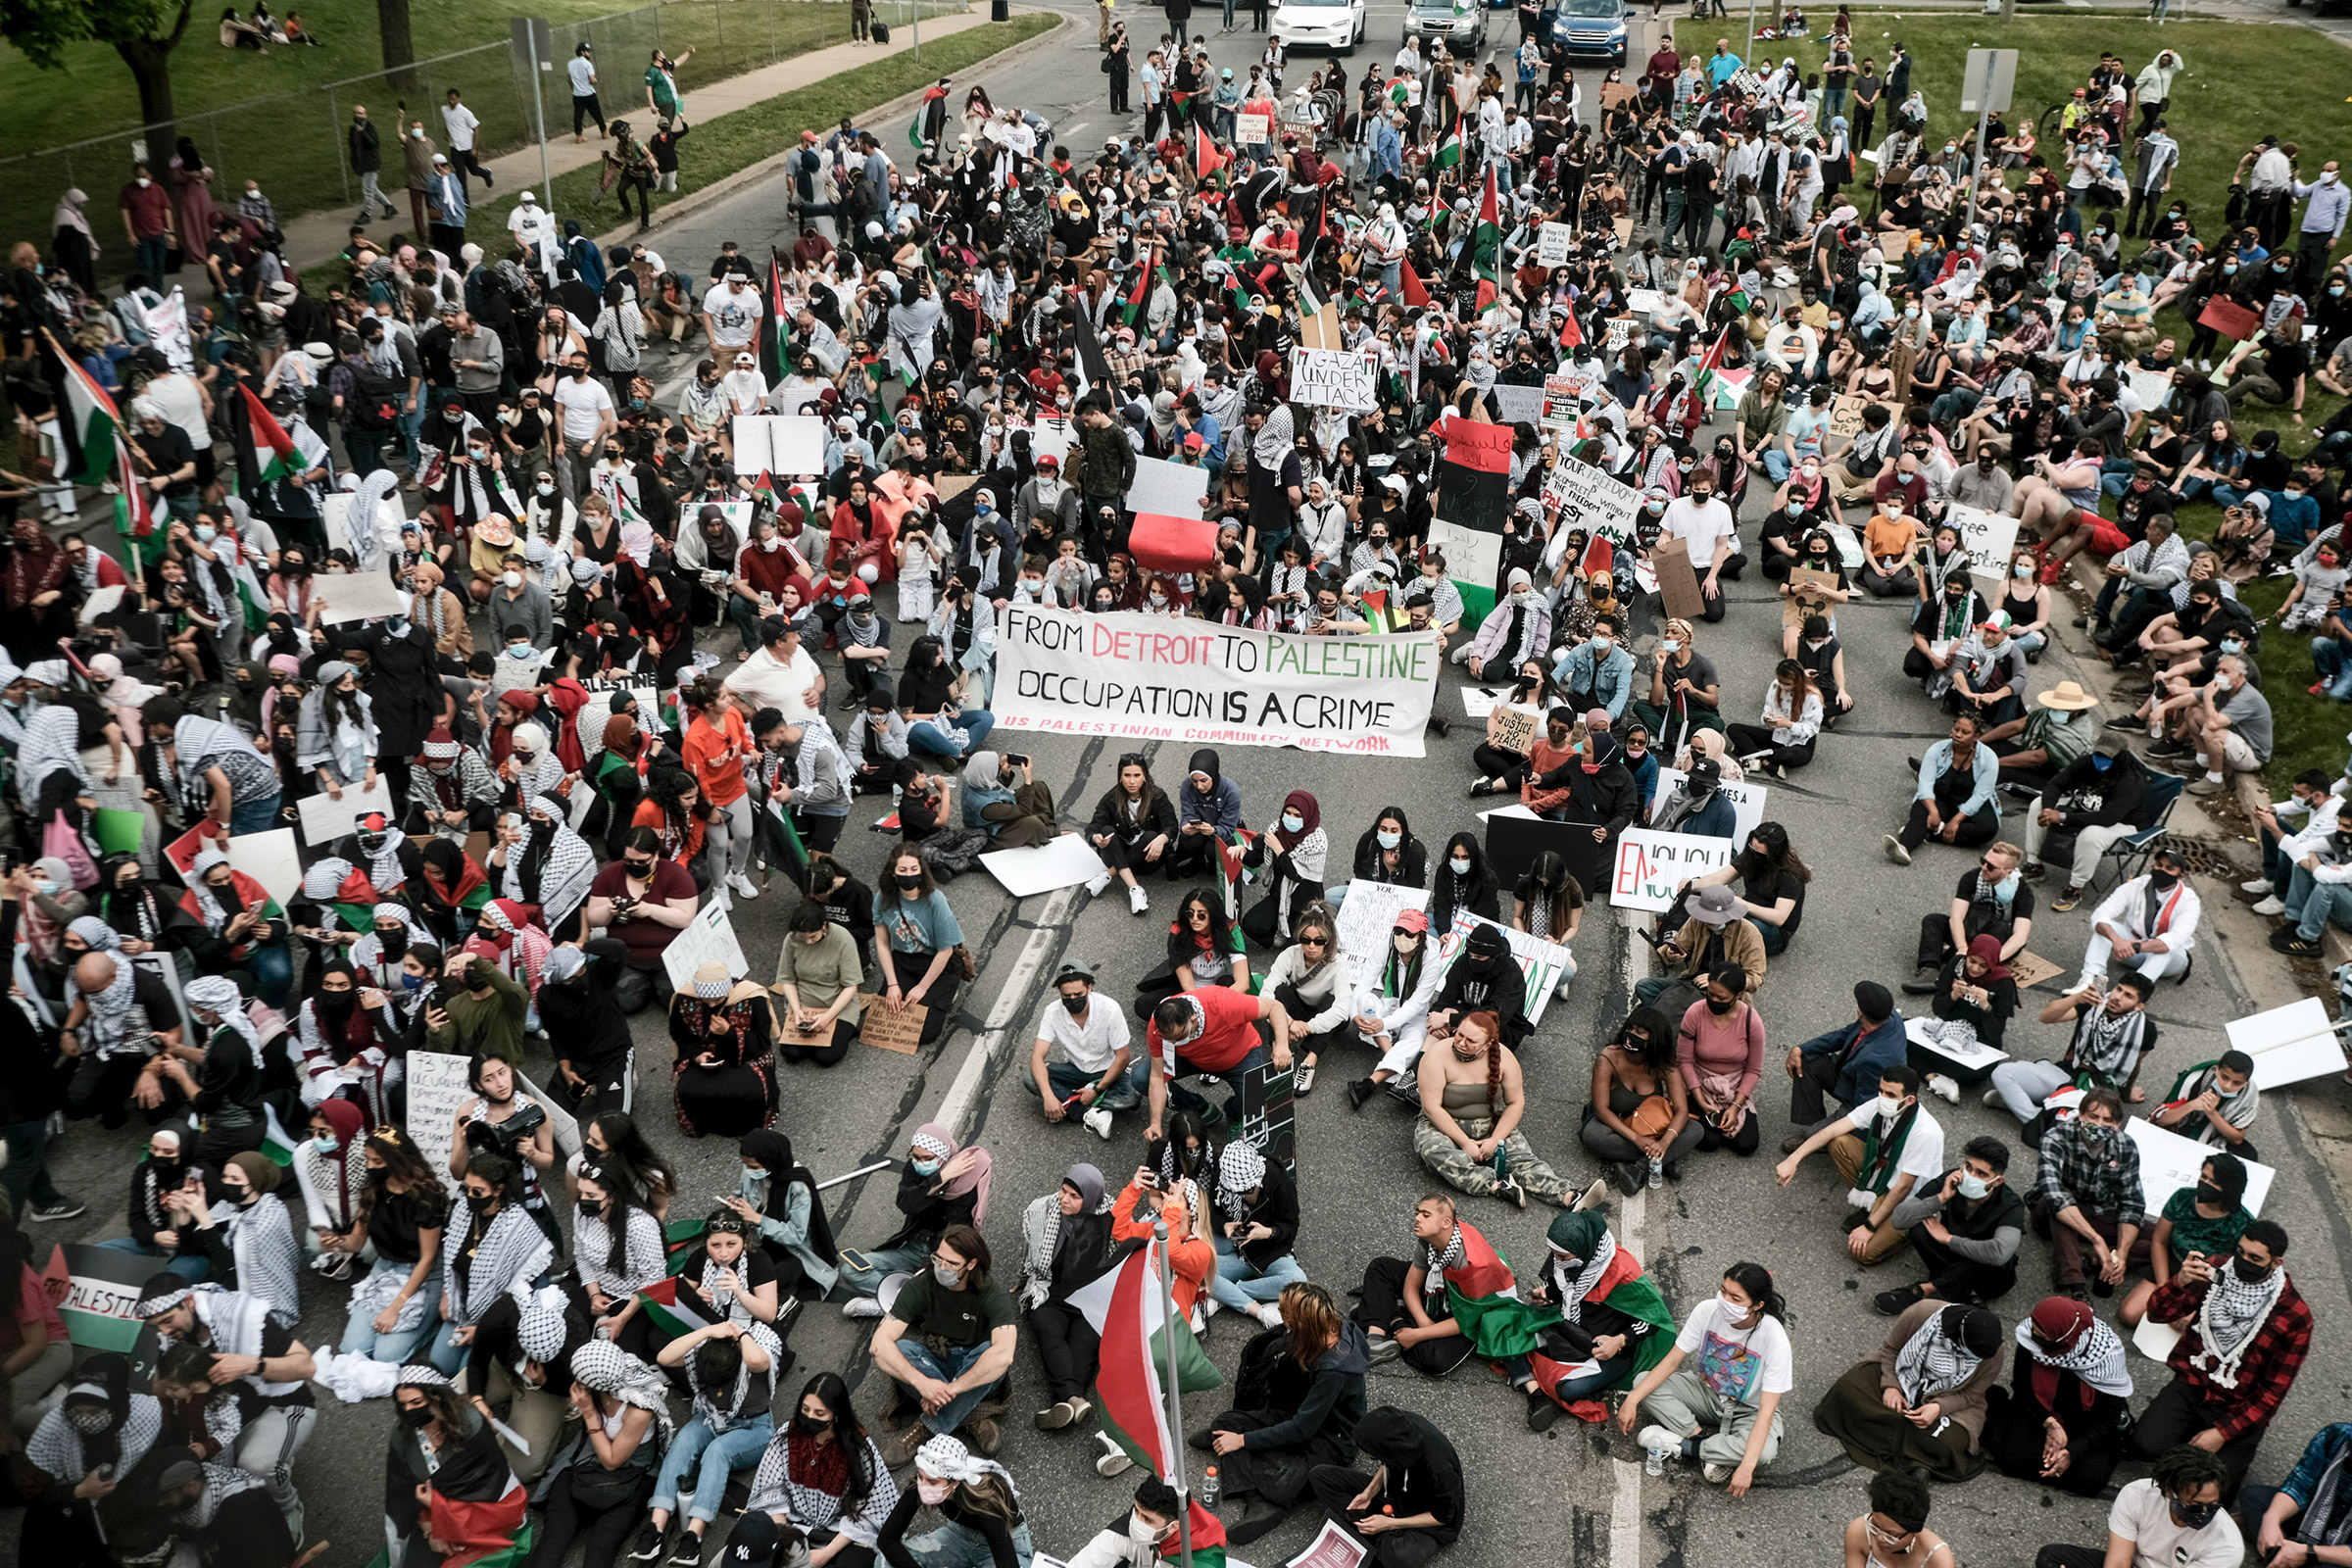 Protesters listen to speeches during a Free Palestine rally in Dearborn, Mich., on May 15, 2021.